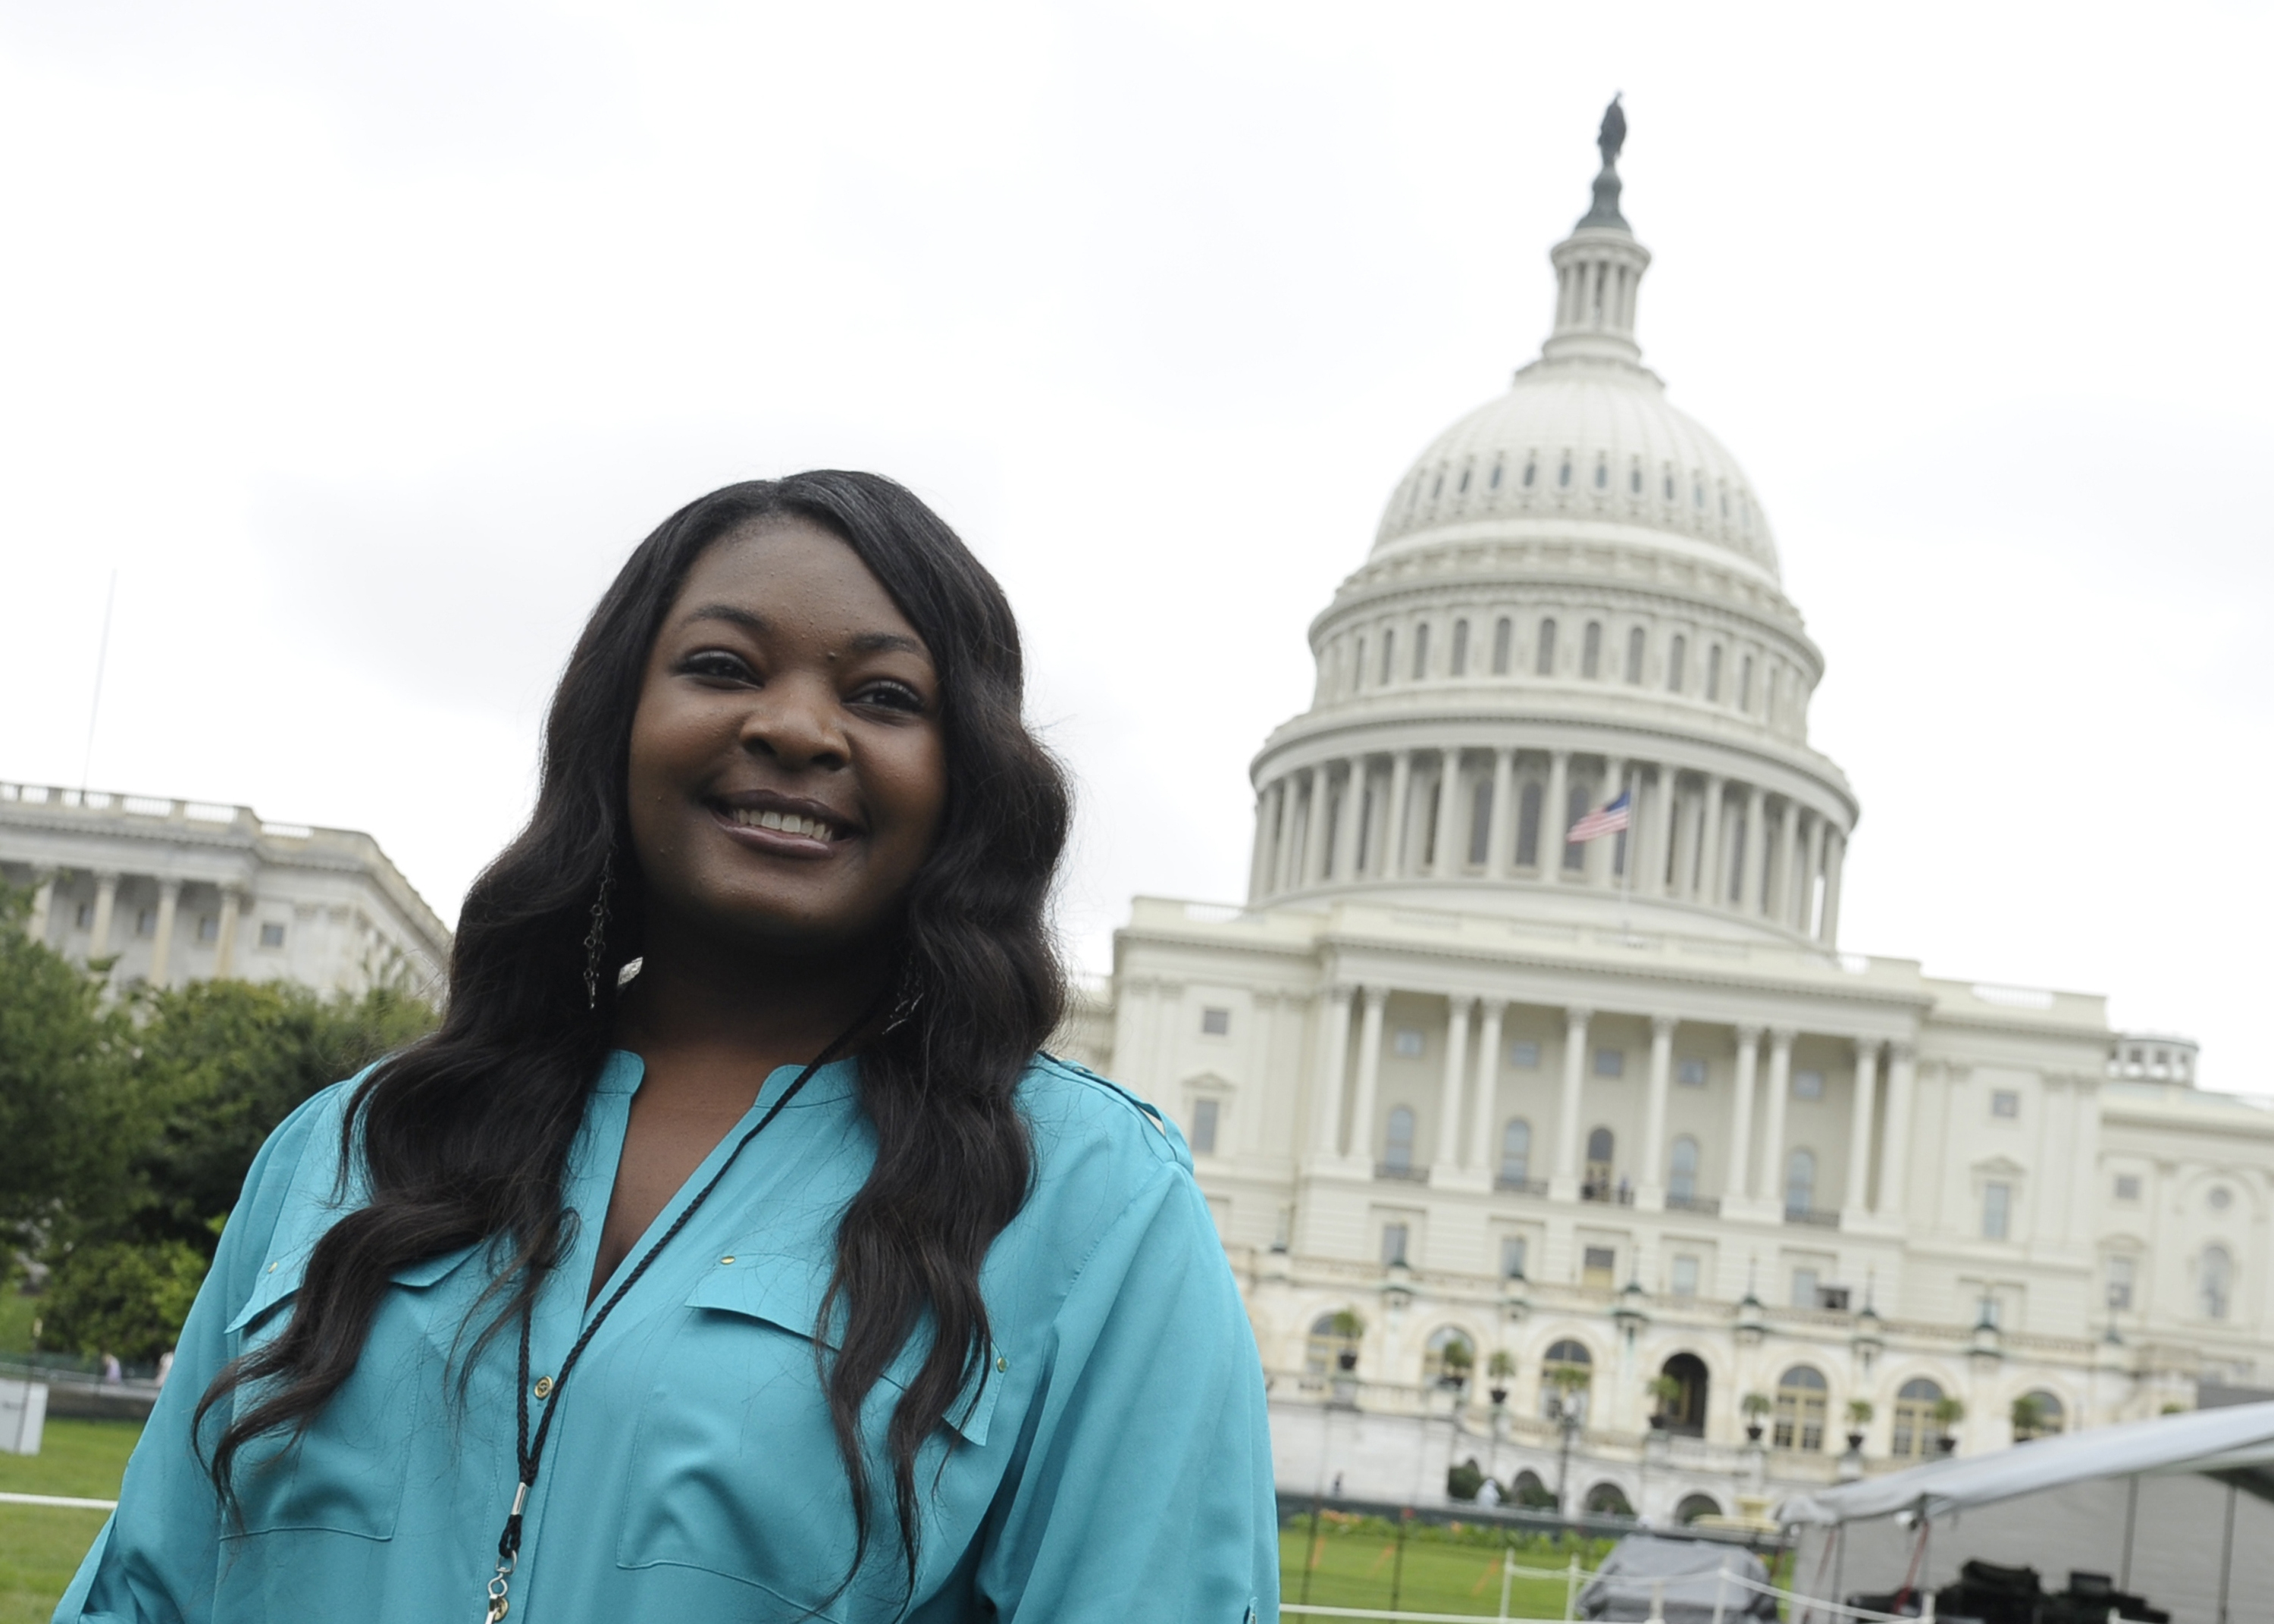 American Idol winner Candice Glover will help reopen the Washington Monument during a May 12 ceremony.